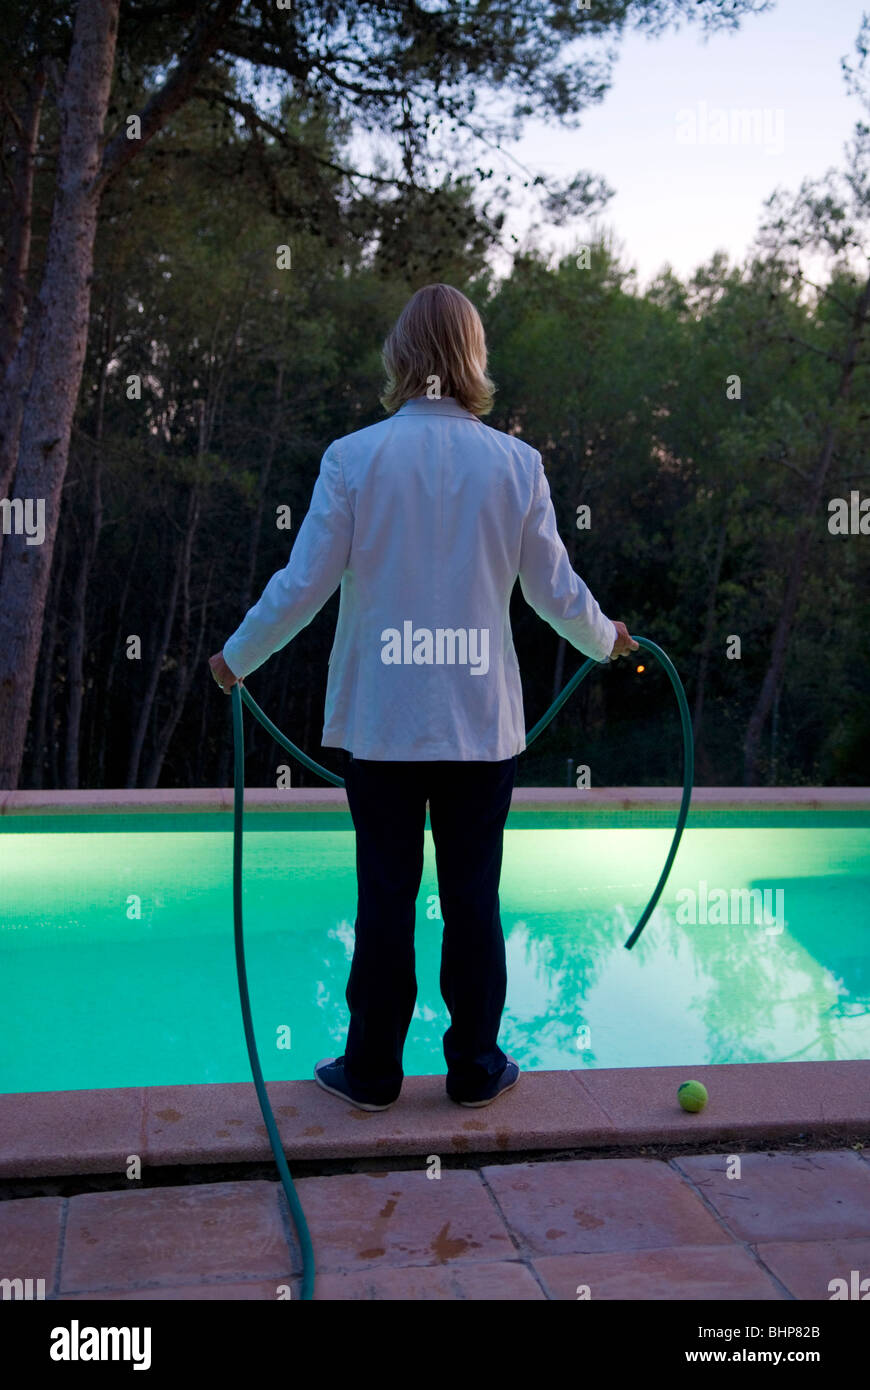 looking at the rear of a suited blond man standing by the side of swimming pool with a hose pipe in his hands - Stock Image